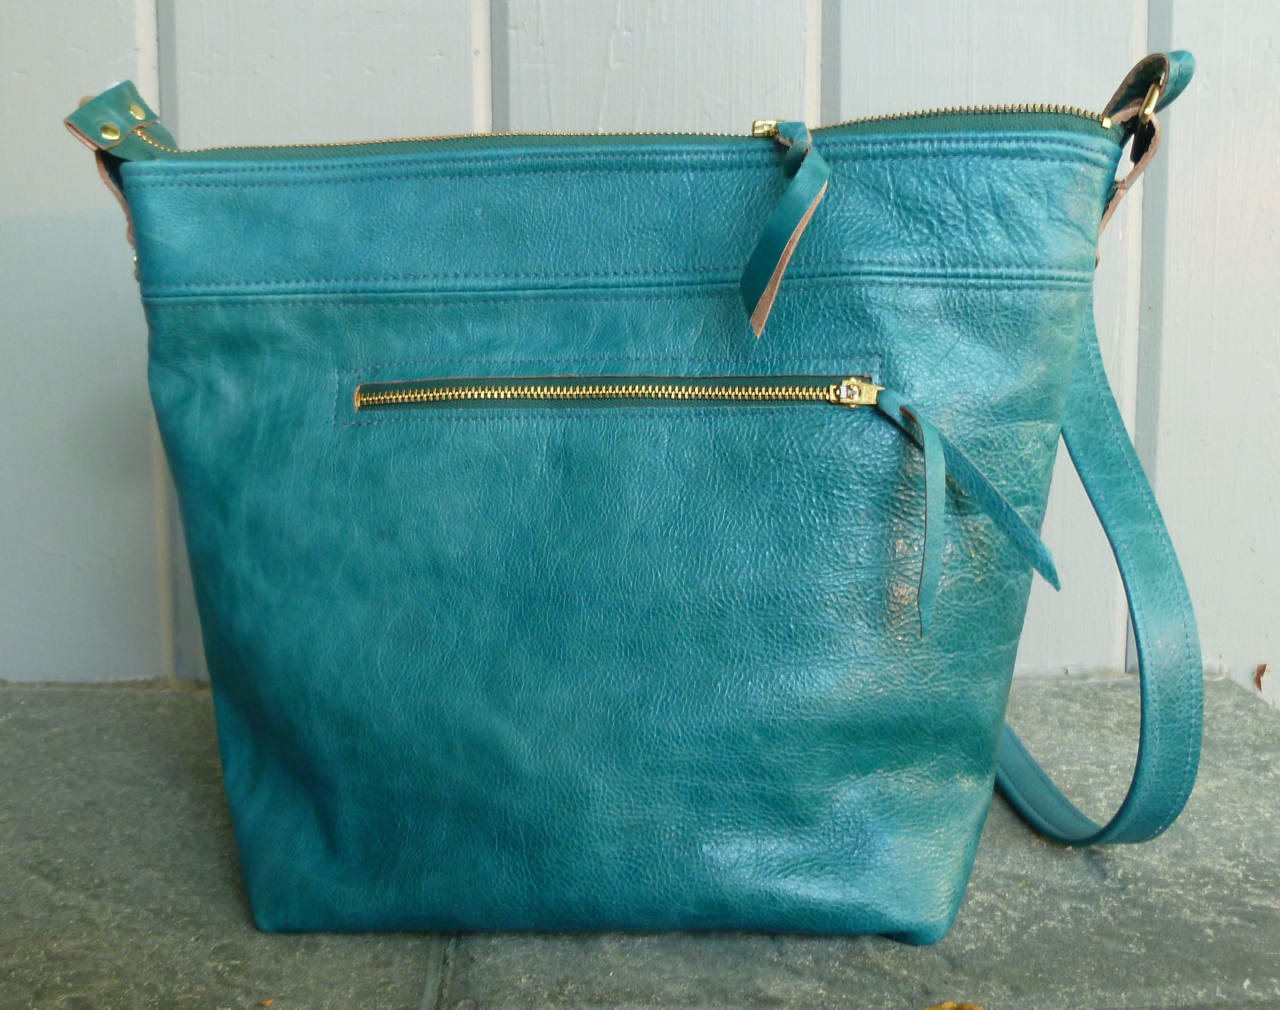 new teal shoulder bag